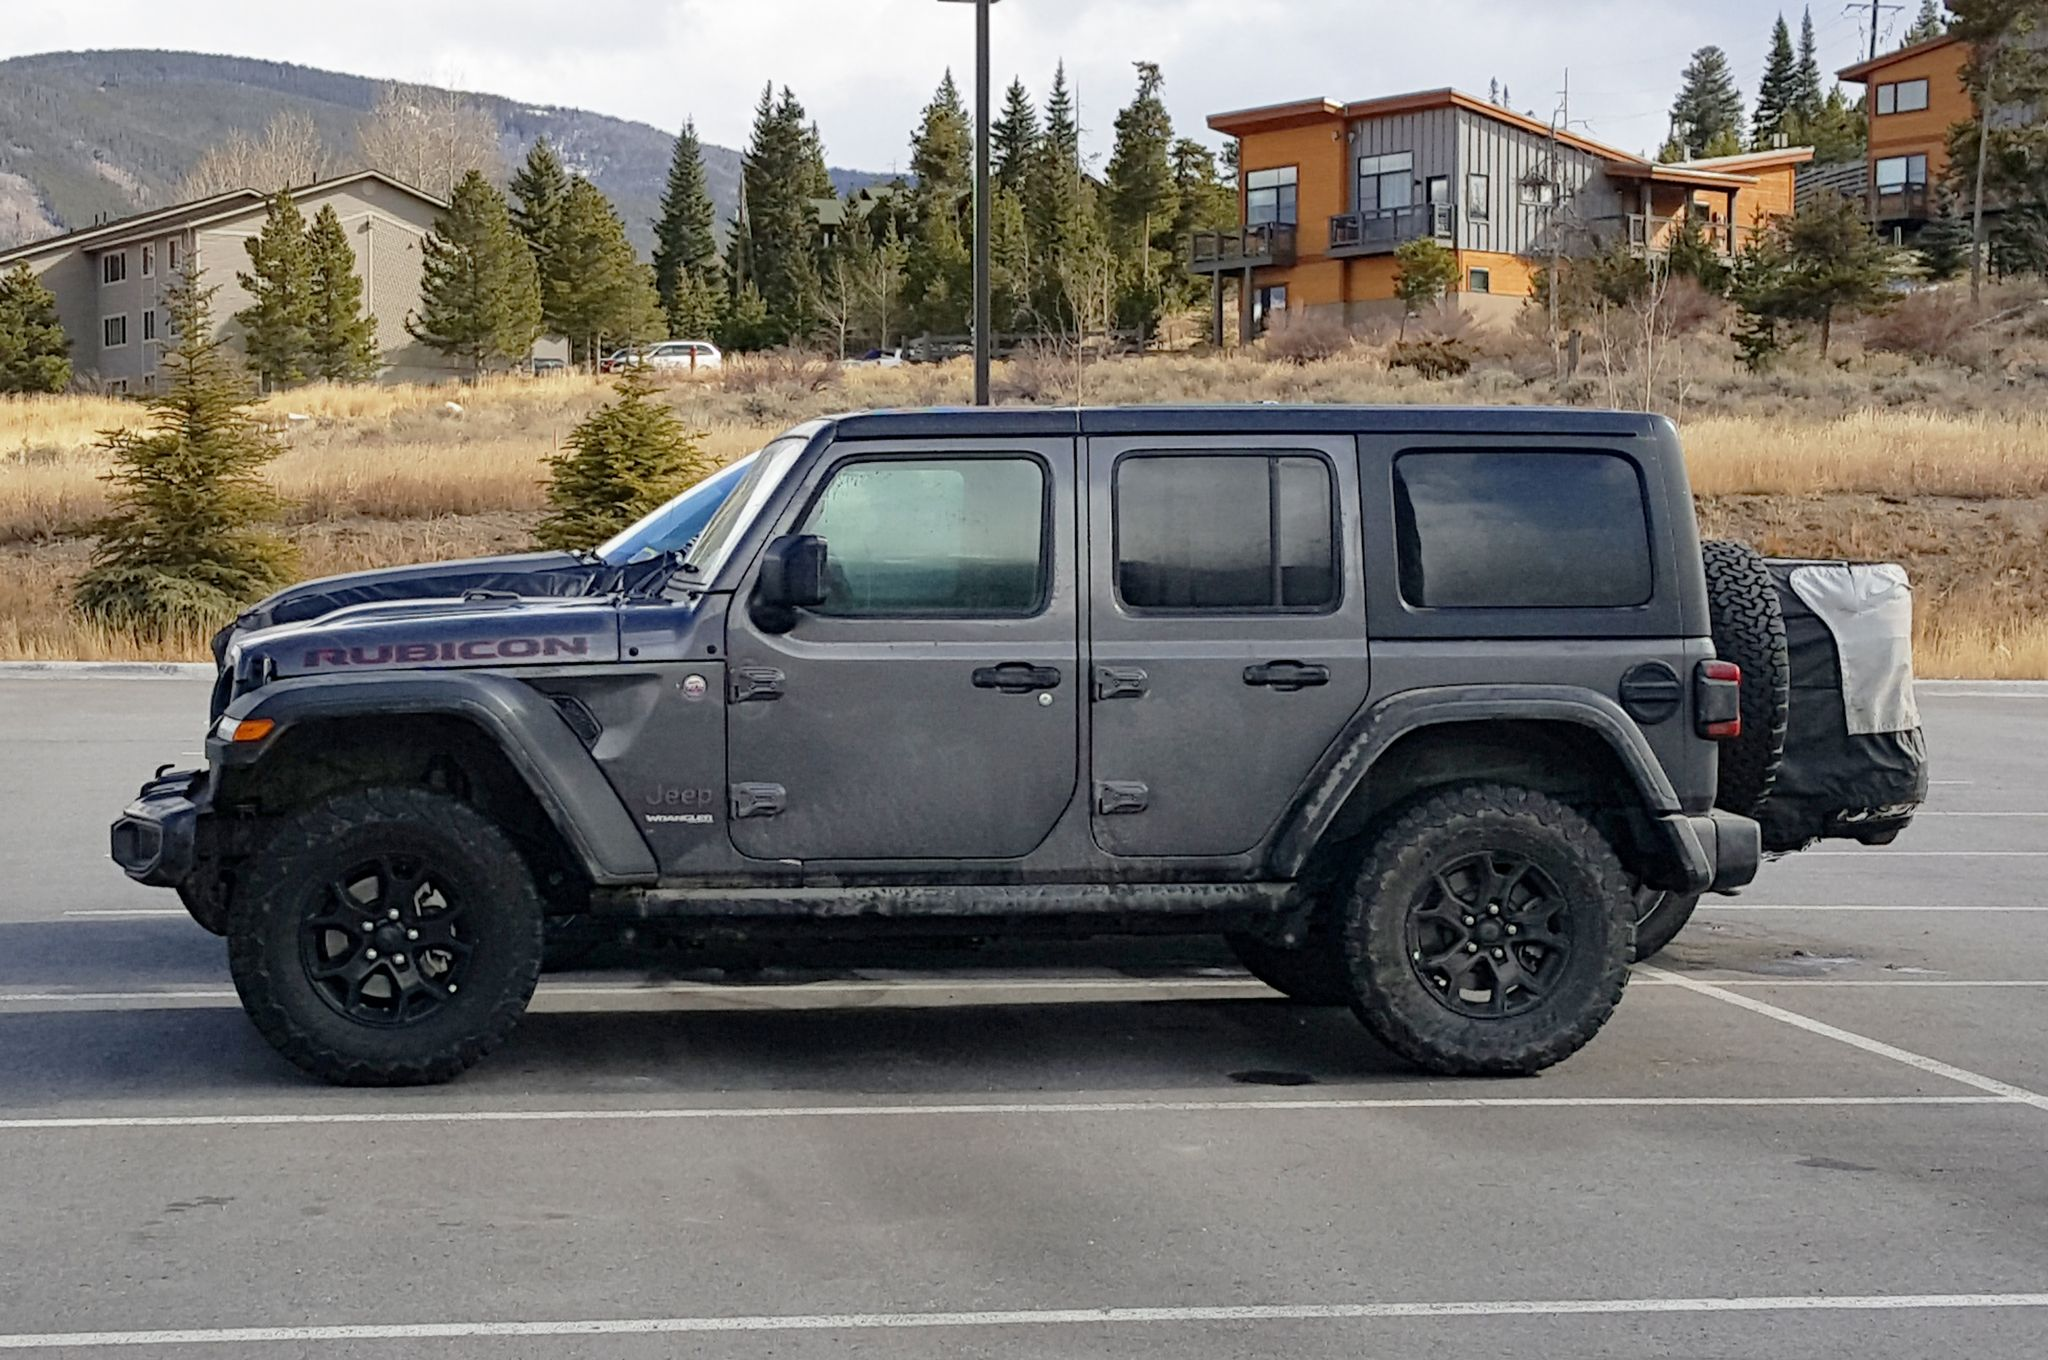 2018 Jeep Wrangler Unlimited Rubicon Spotted In Granite